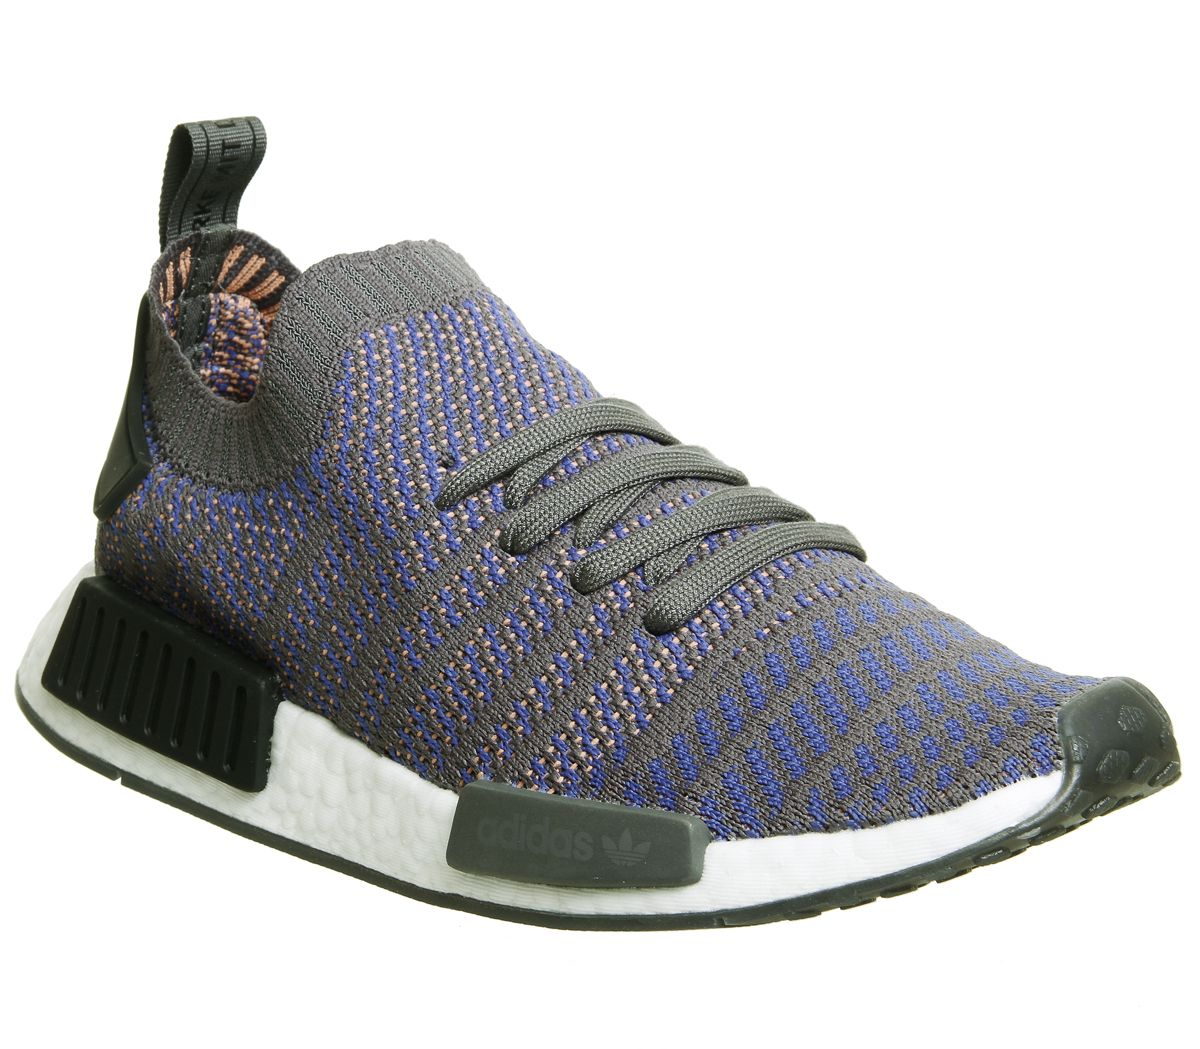 64b4775ba adidas Nmd R1 Prime Knit Trainers Hi Res Blue Black White - His trainers